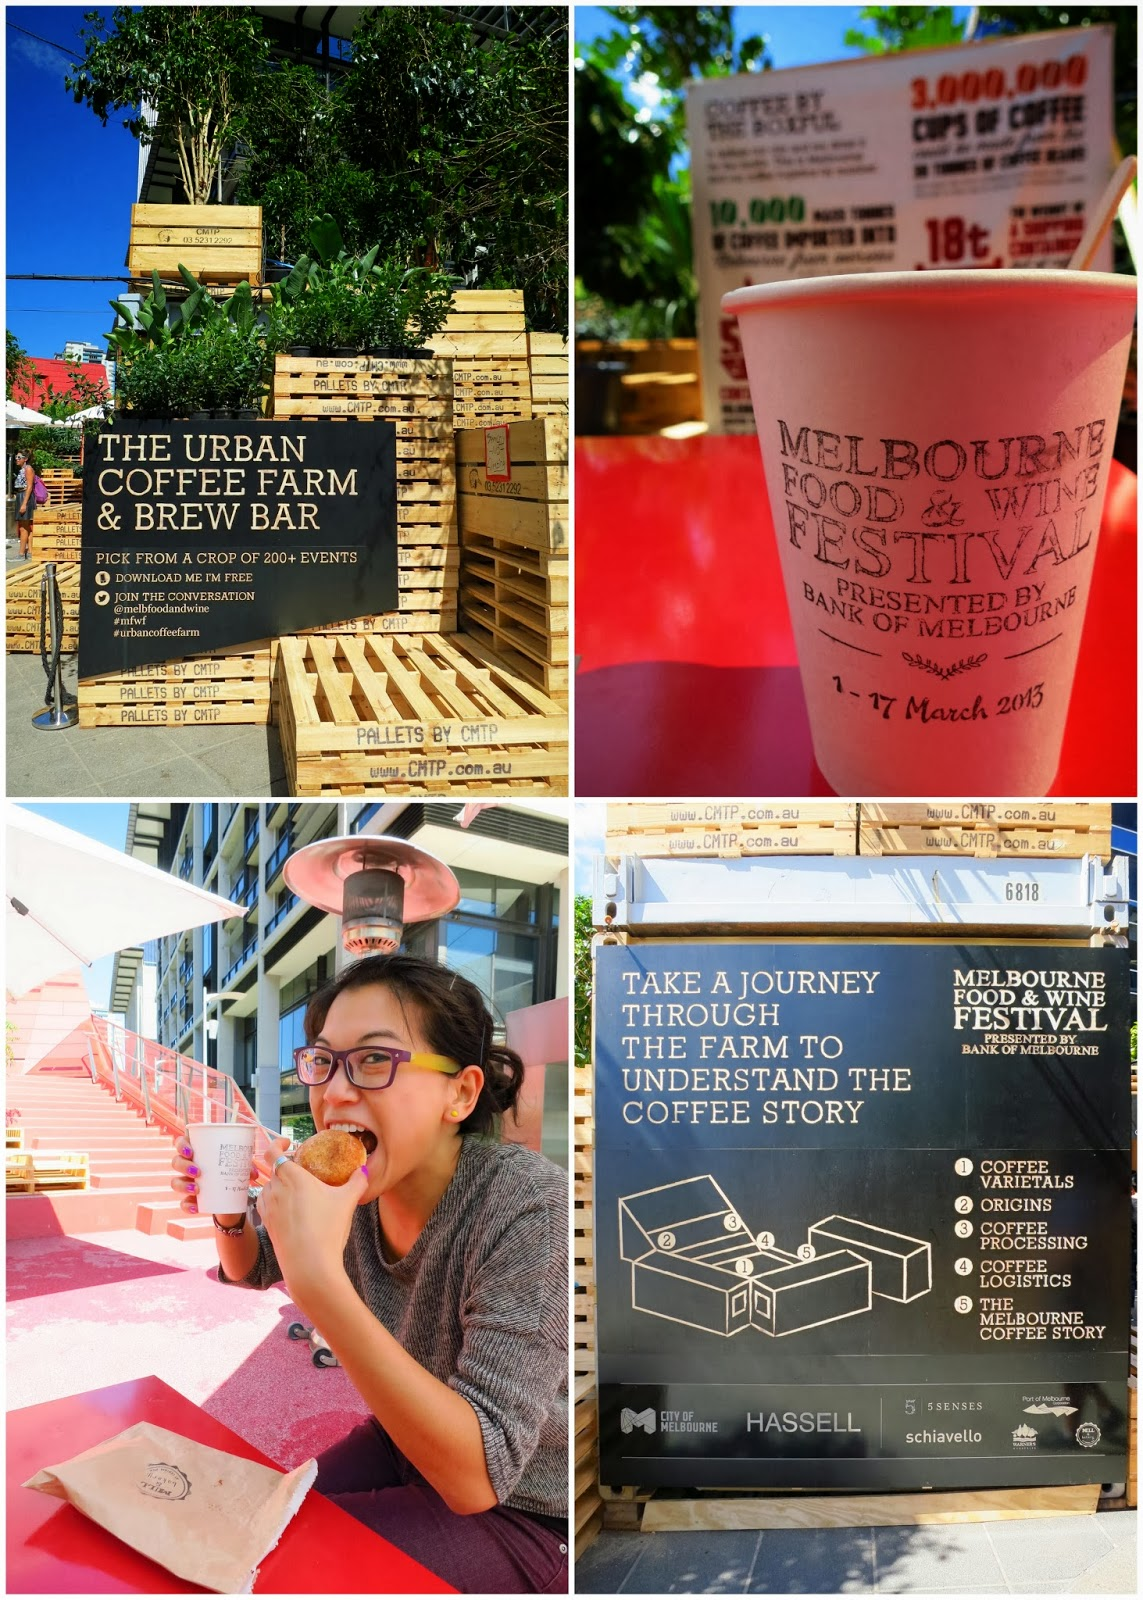 The pop-up Urban Coffee Farm at the Melbourne Food & Wine Festival